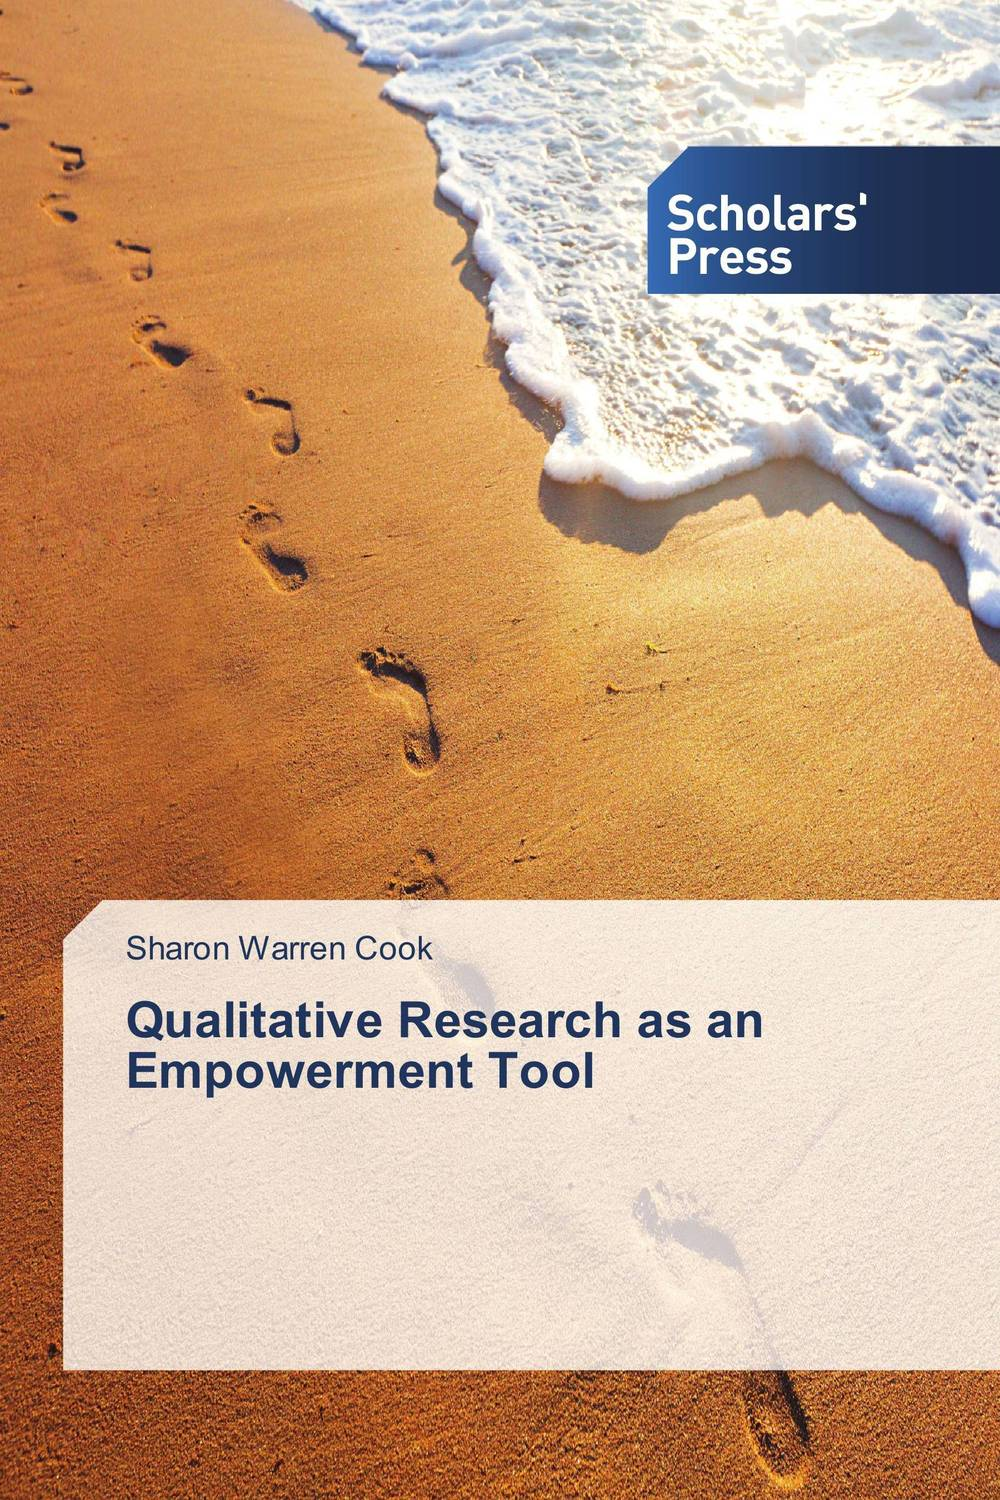 Qualitative Research as an Empowerment Tool